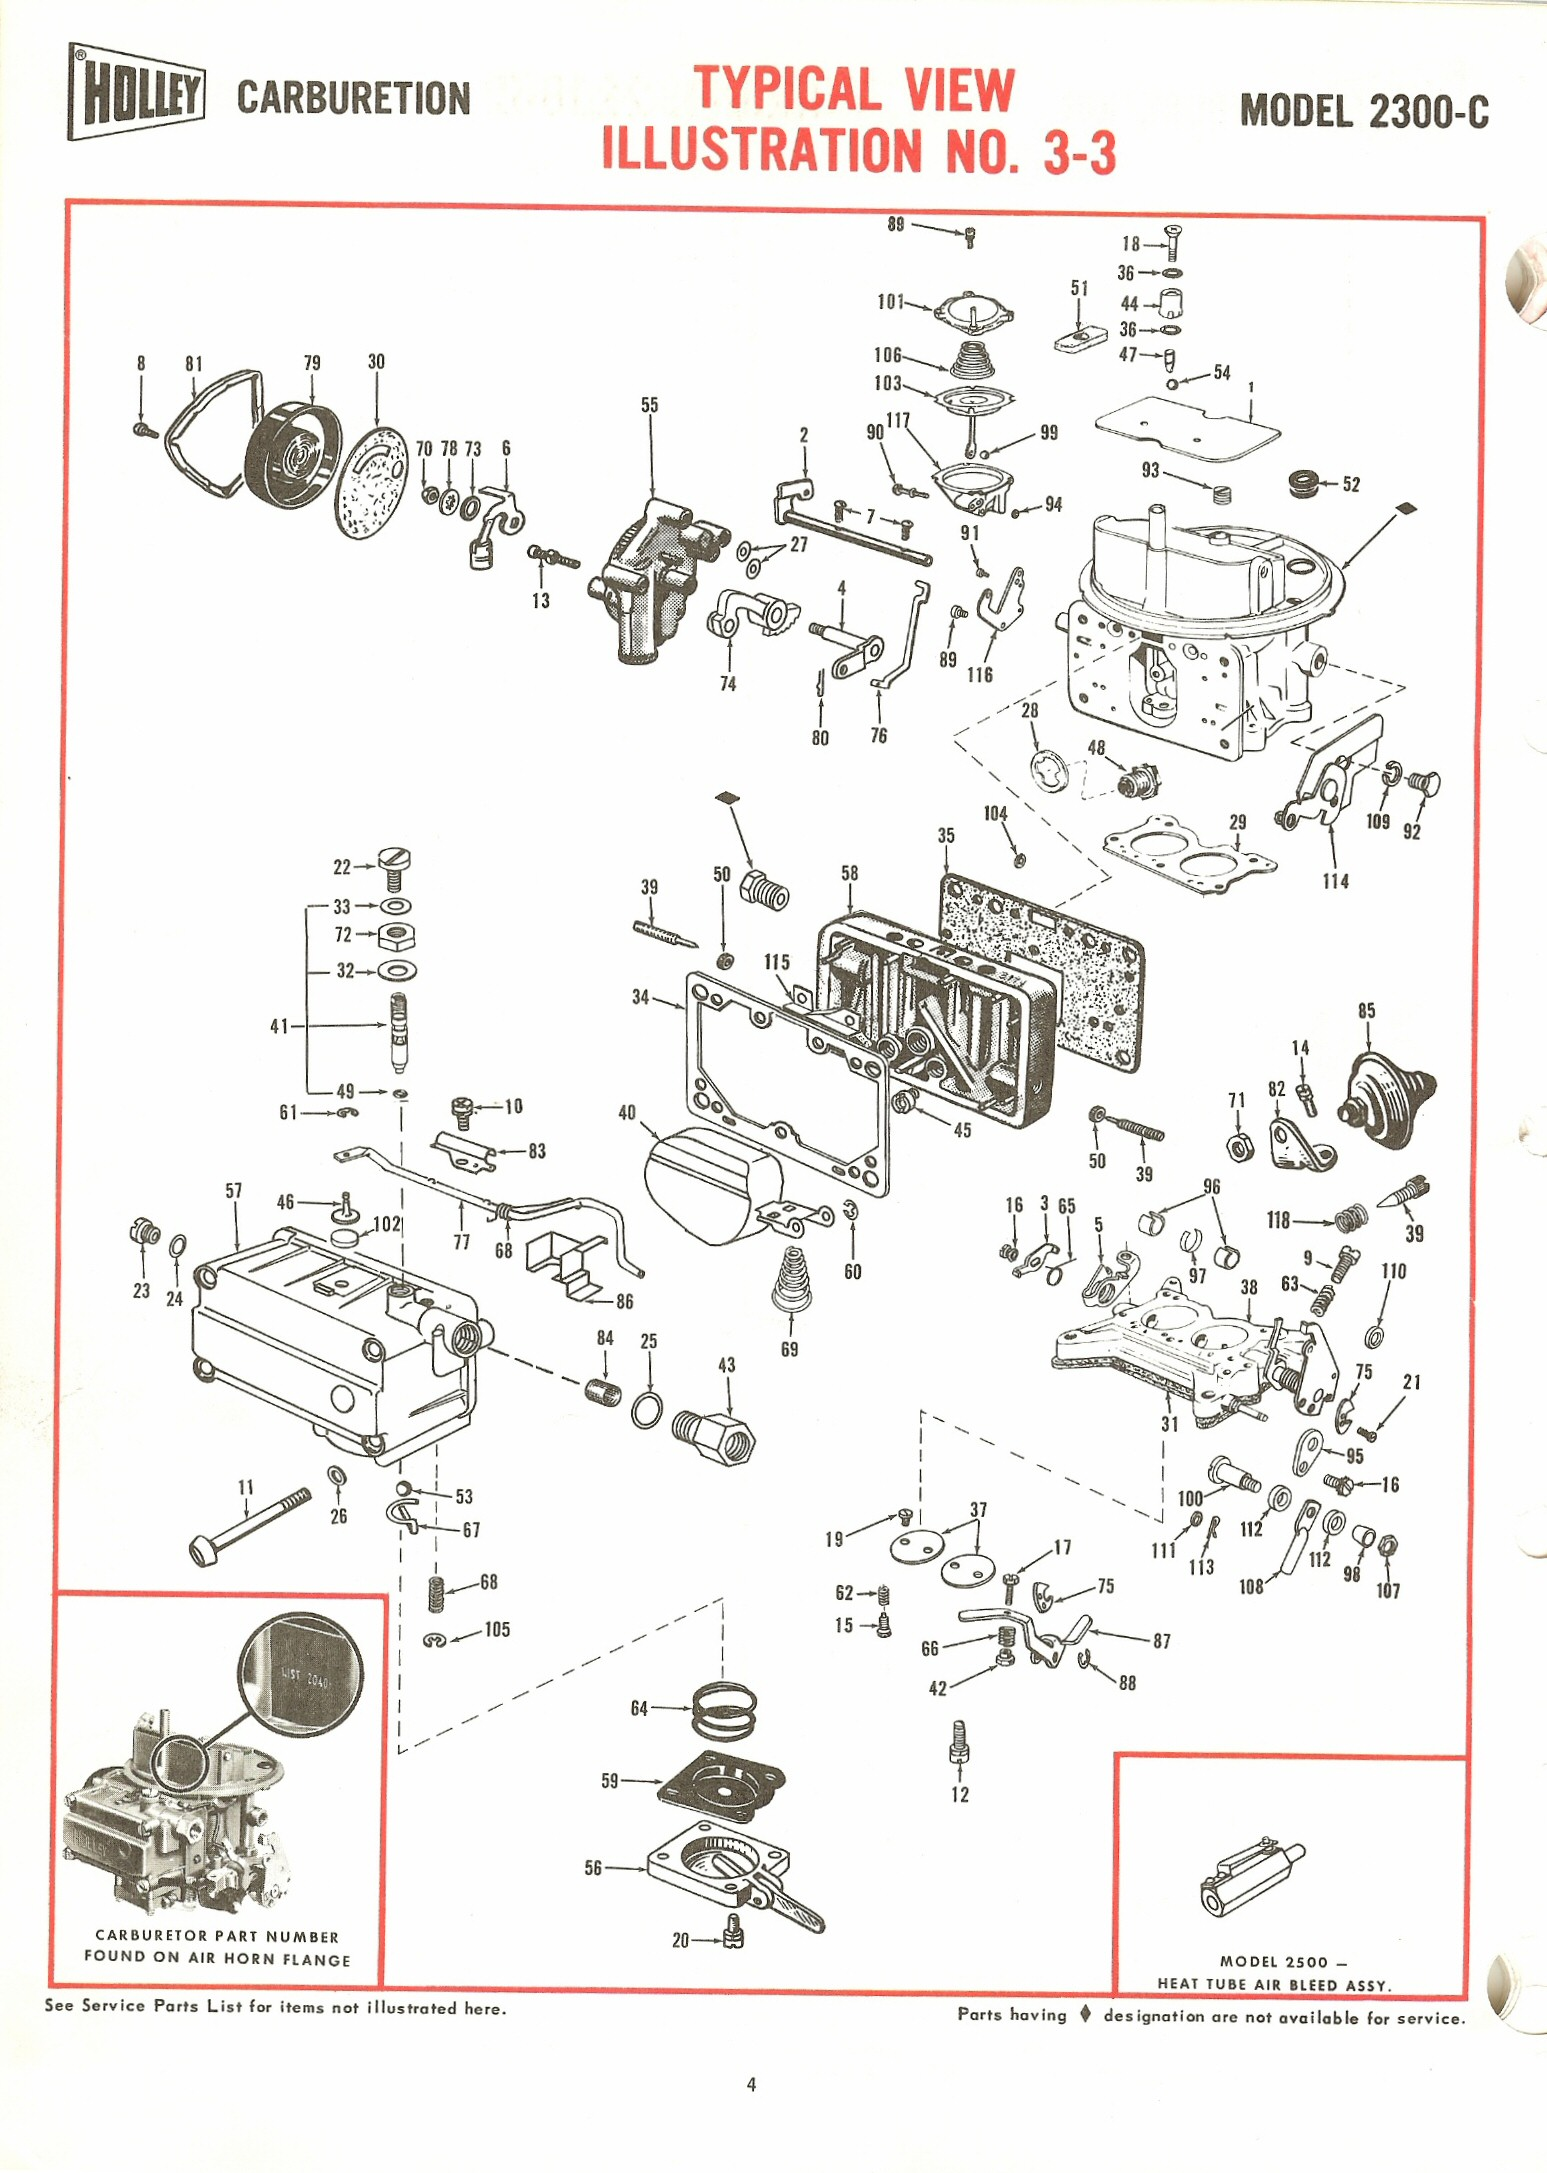 hight resolution of holley 2300c exploded diagrams the old car manual project holley 1940 diagram holley exploded diagram